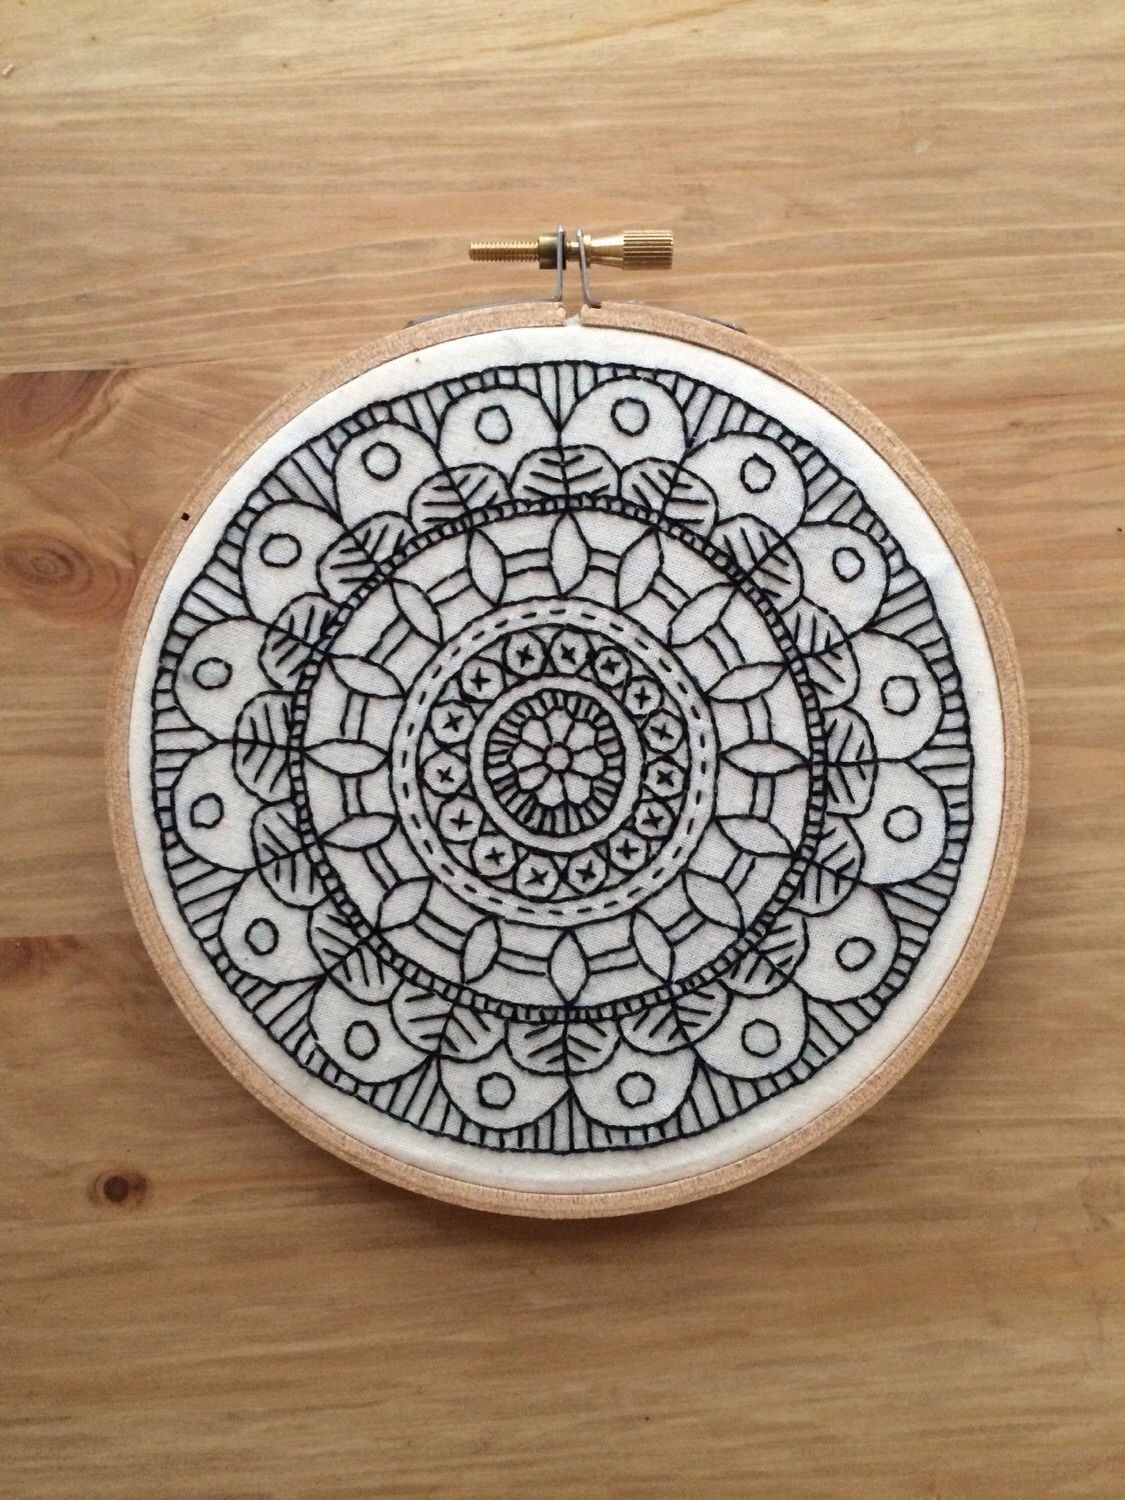 How precise by hand love this sort of an embroidery zentangle